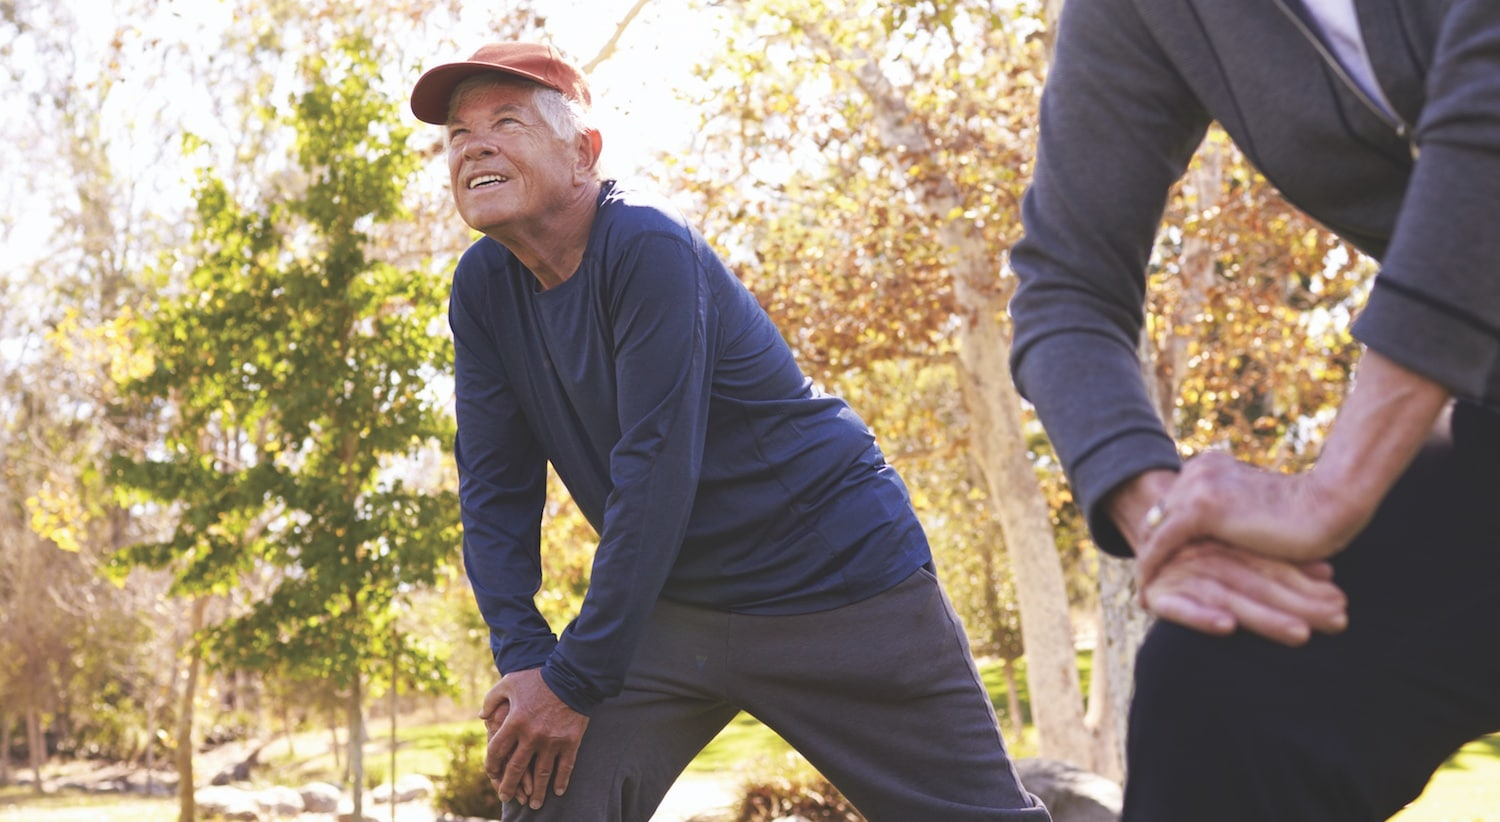 Why Try Tai Chi A Traverse City Instructor Shares The Health Benefits Mynorth Com